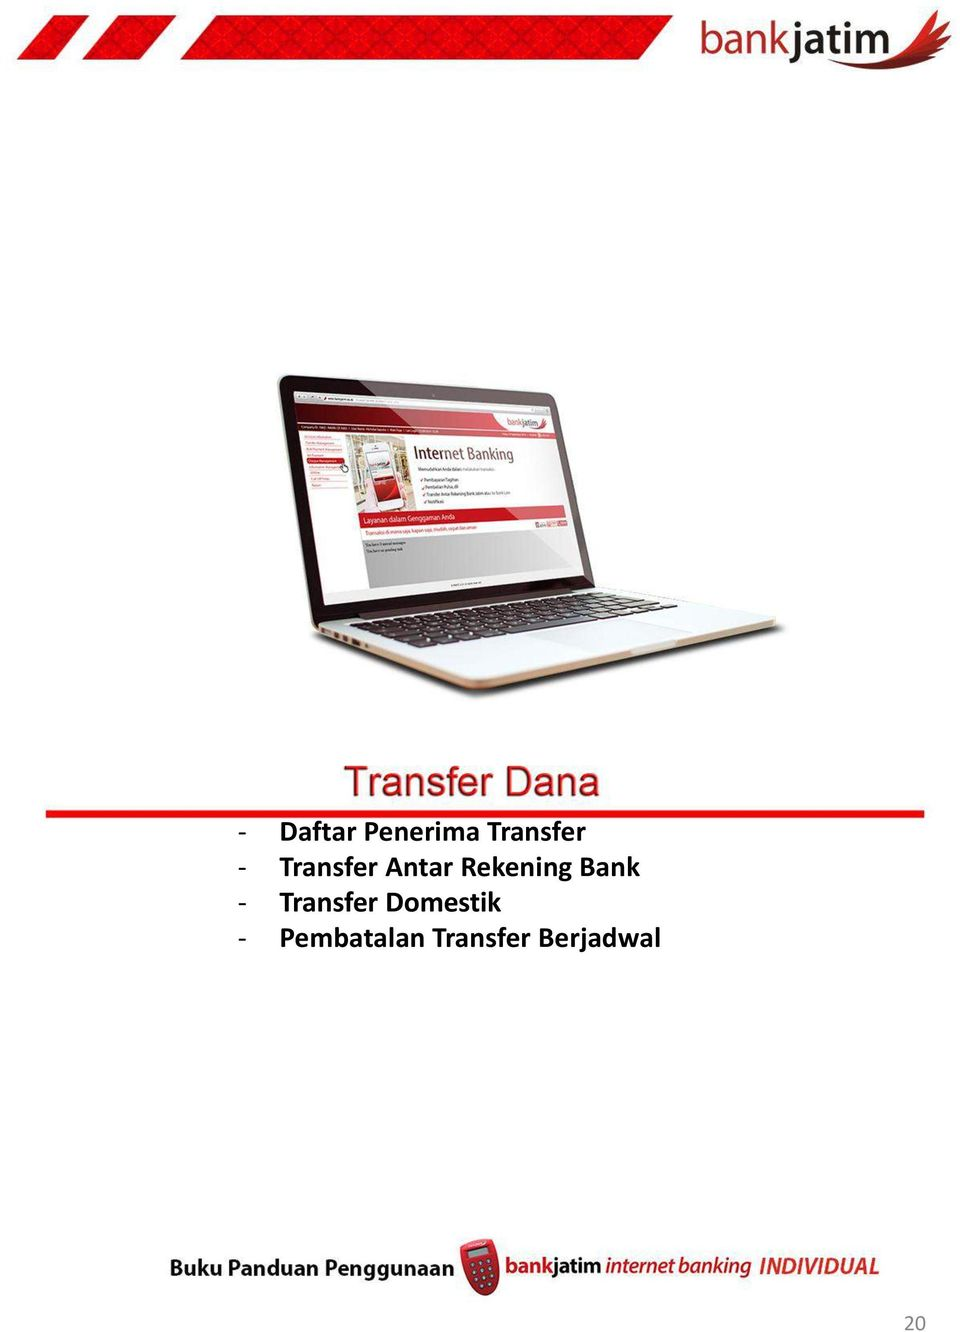 Bank - Transfer Domestik -